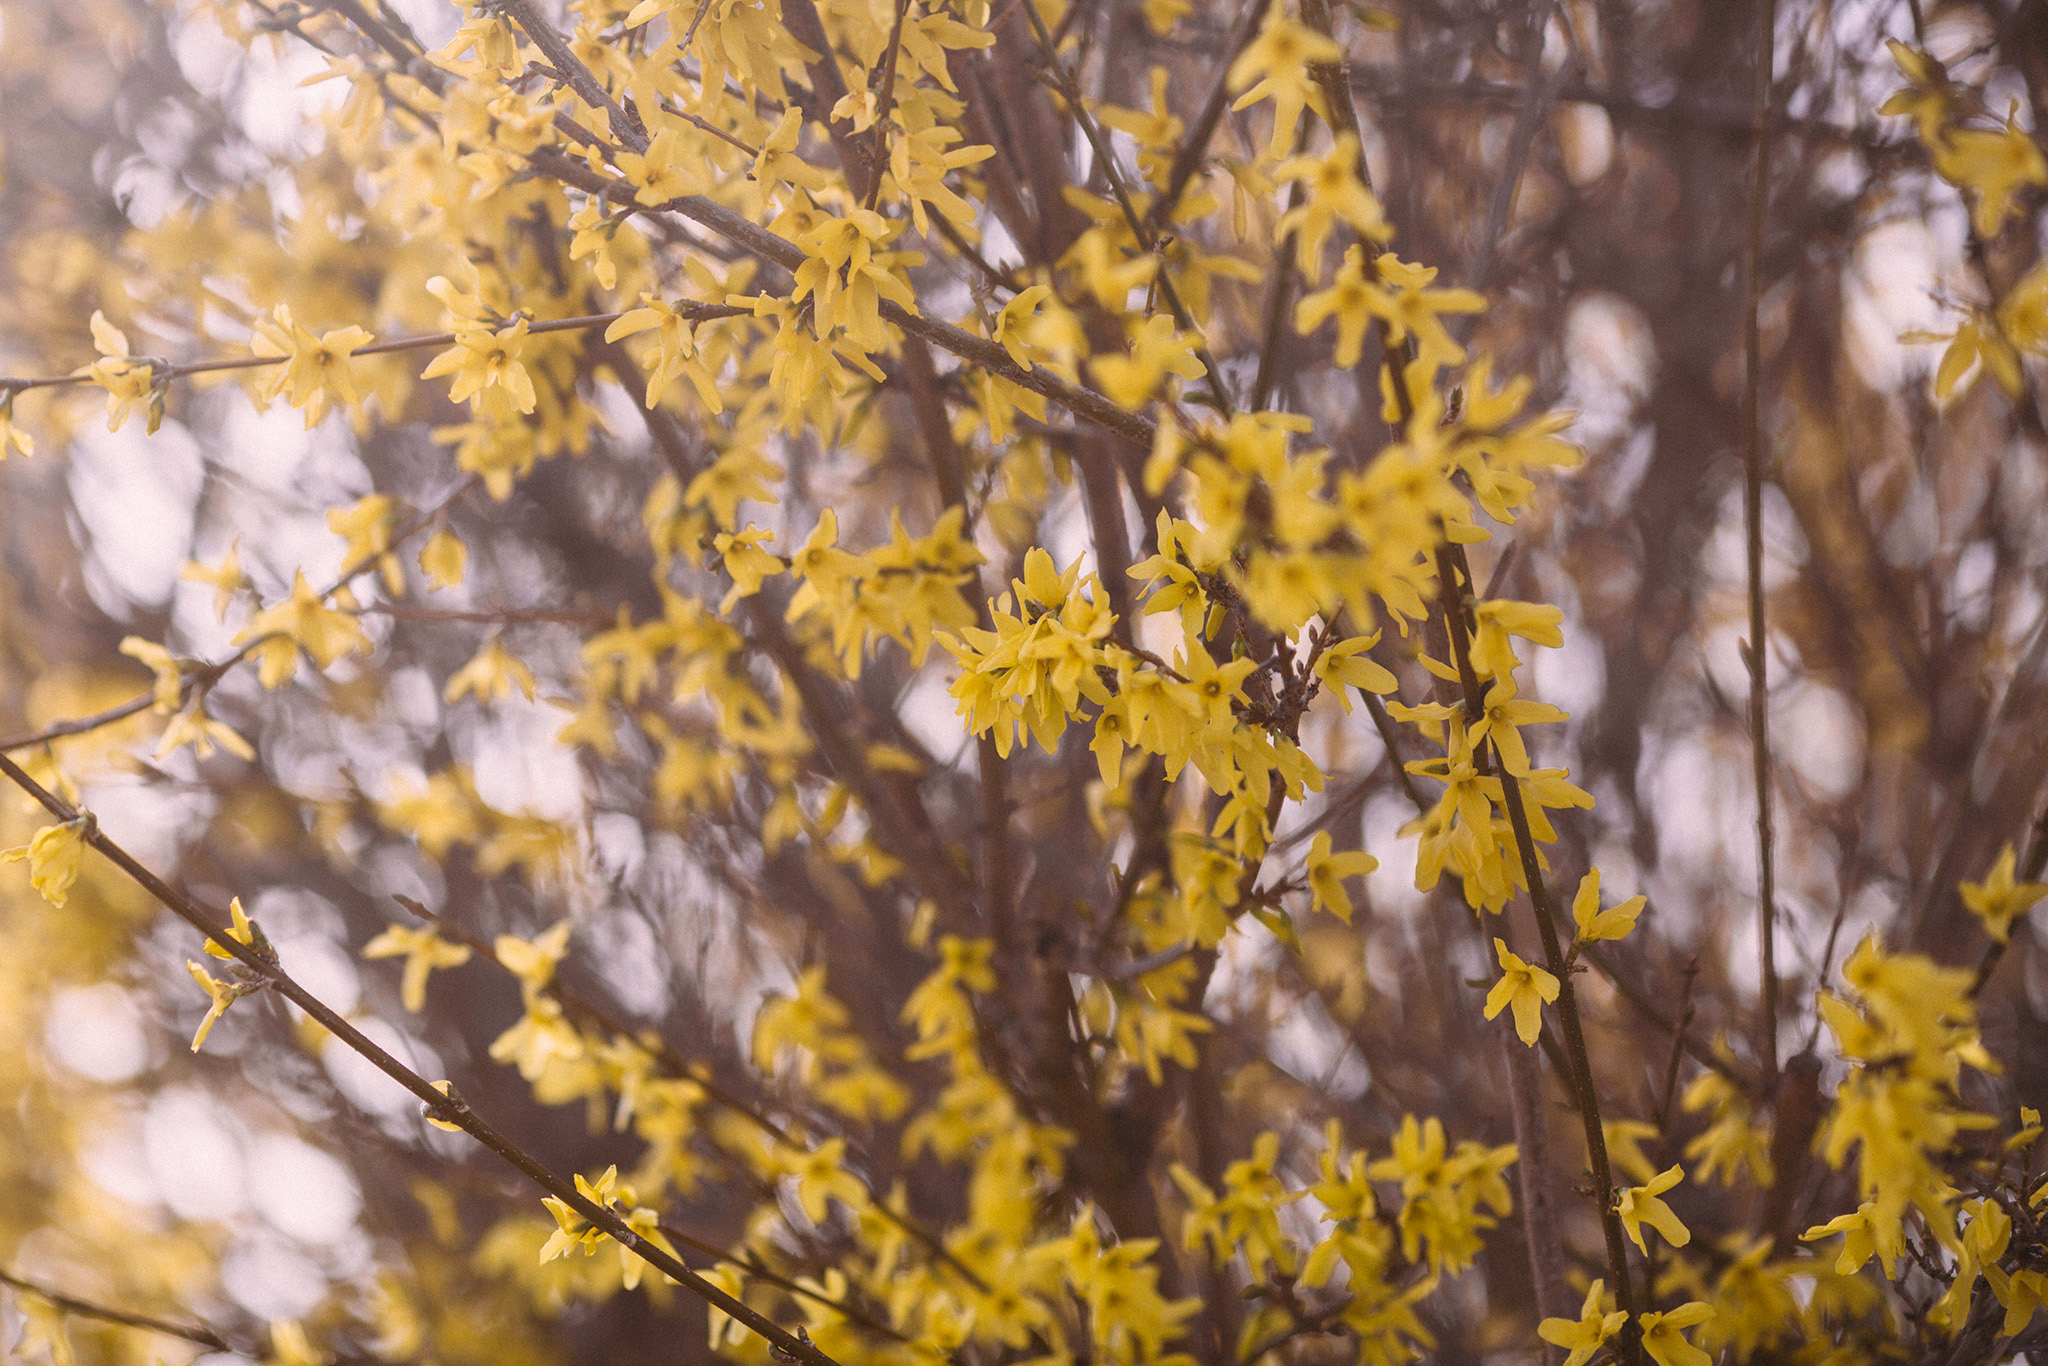 April 11: A colleague told me to pay attention to the way spring rolls out slowly and colorfully, that there'd be blooms on top of blooms. In the days and weeks that followed these initial yellow offerings I realized one could not not notice. Every day is newly stunning. It's incredible.